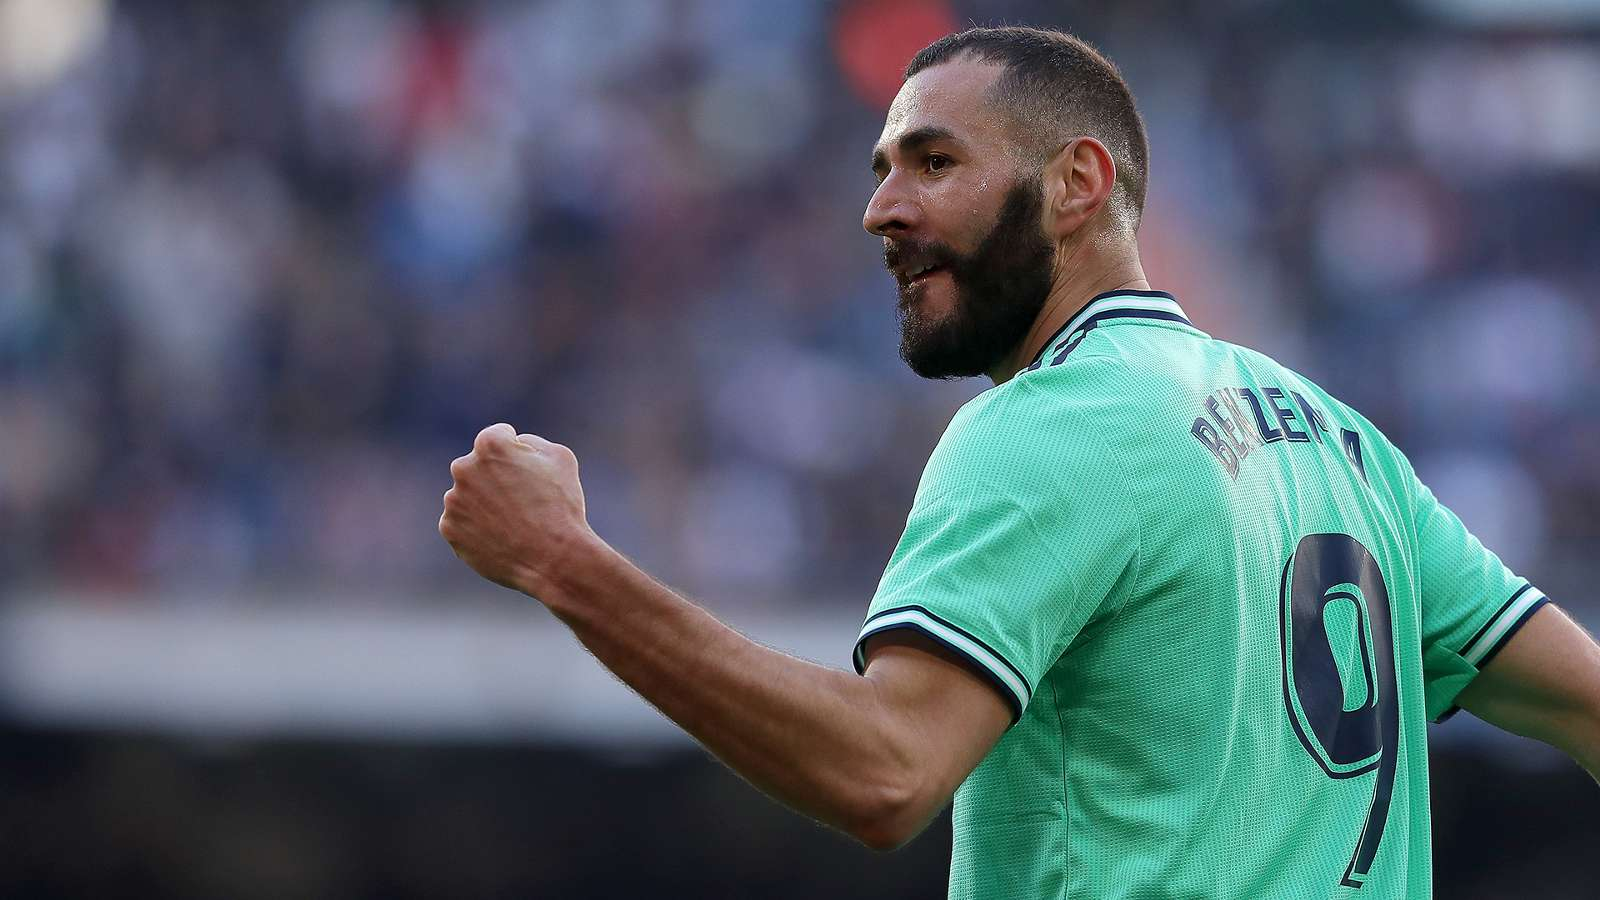 Can Karim Benzema play for a team other than France?